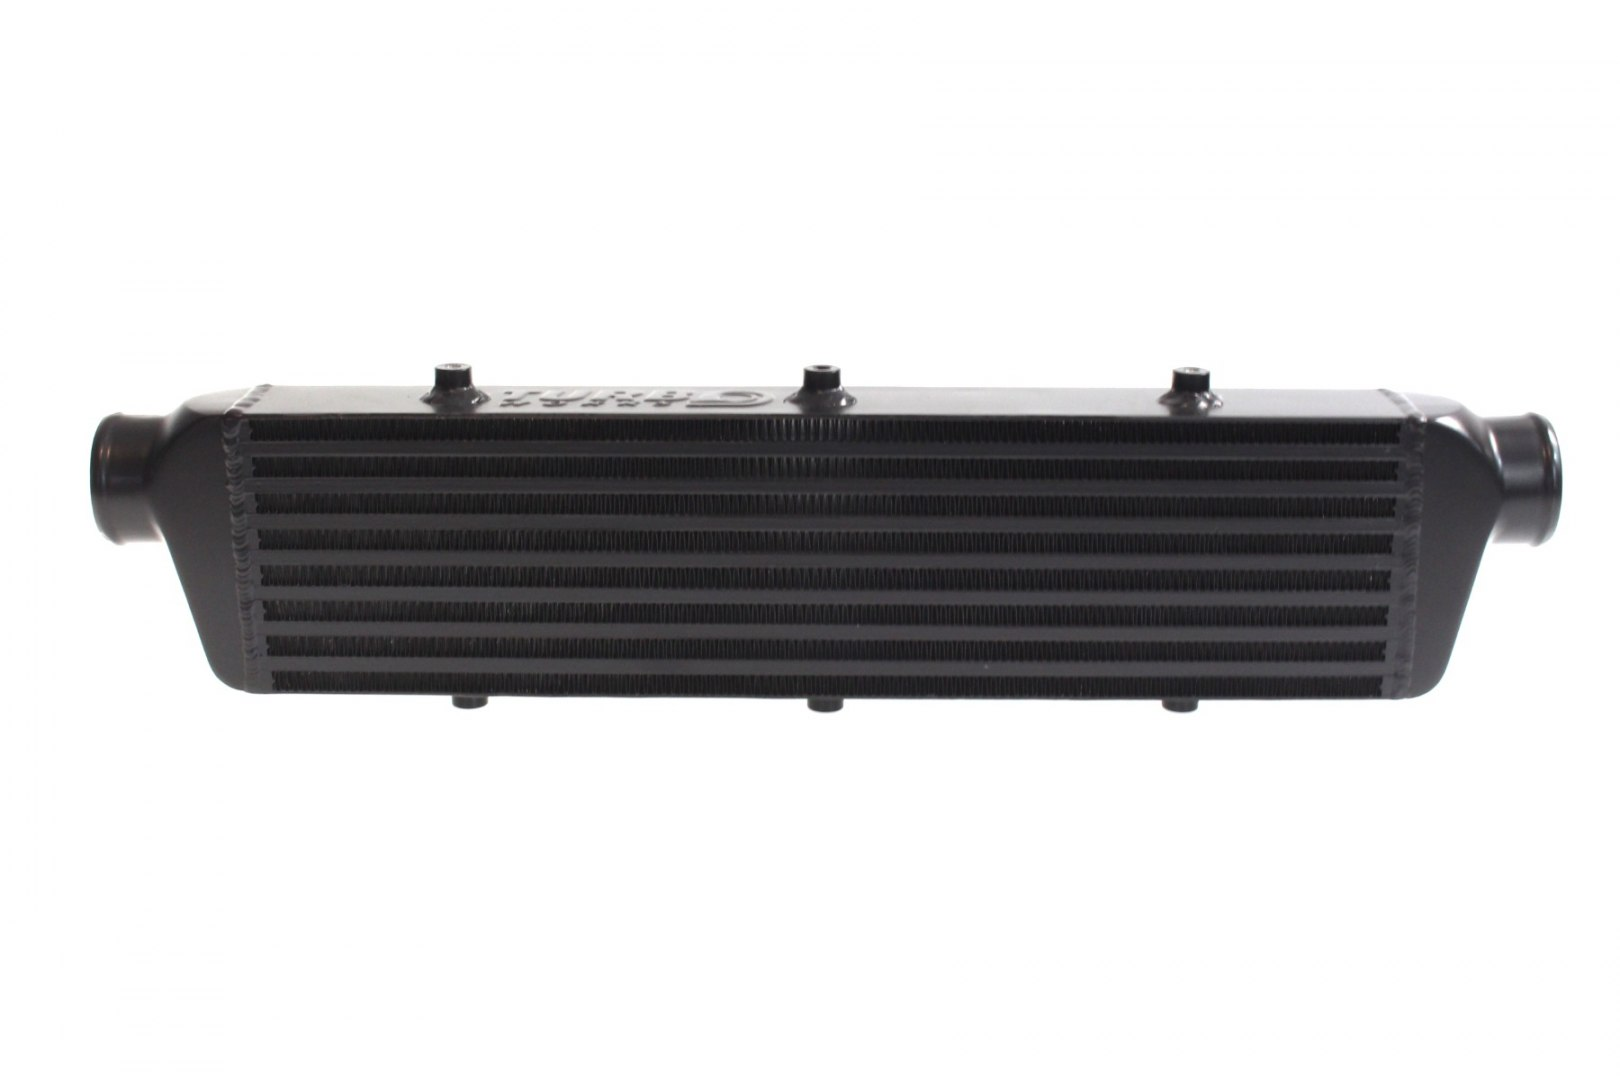 "Intercooler TurboWorks 550x140x65 2,5"" BAR AND PLATE Czarny - GRUBYGARAGE - Sklep Tuningowy"